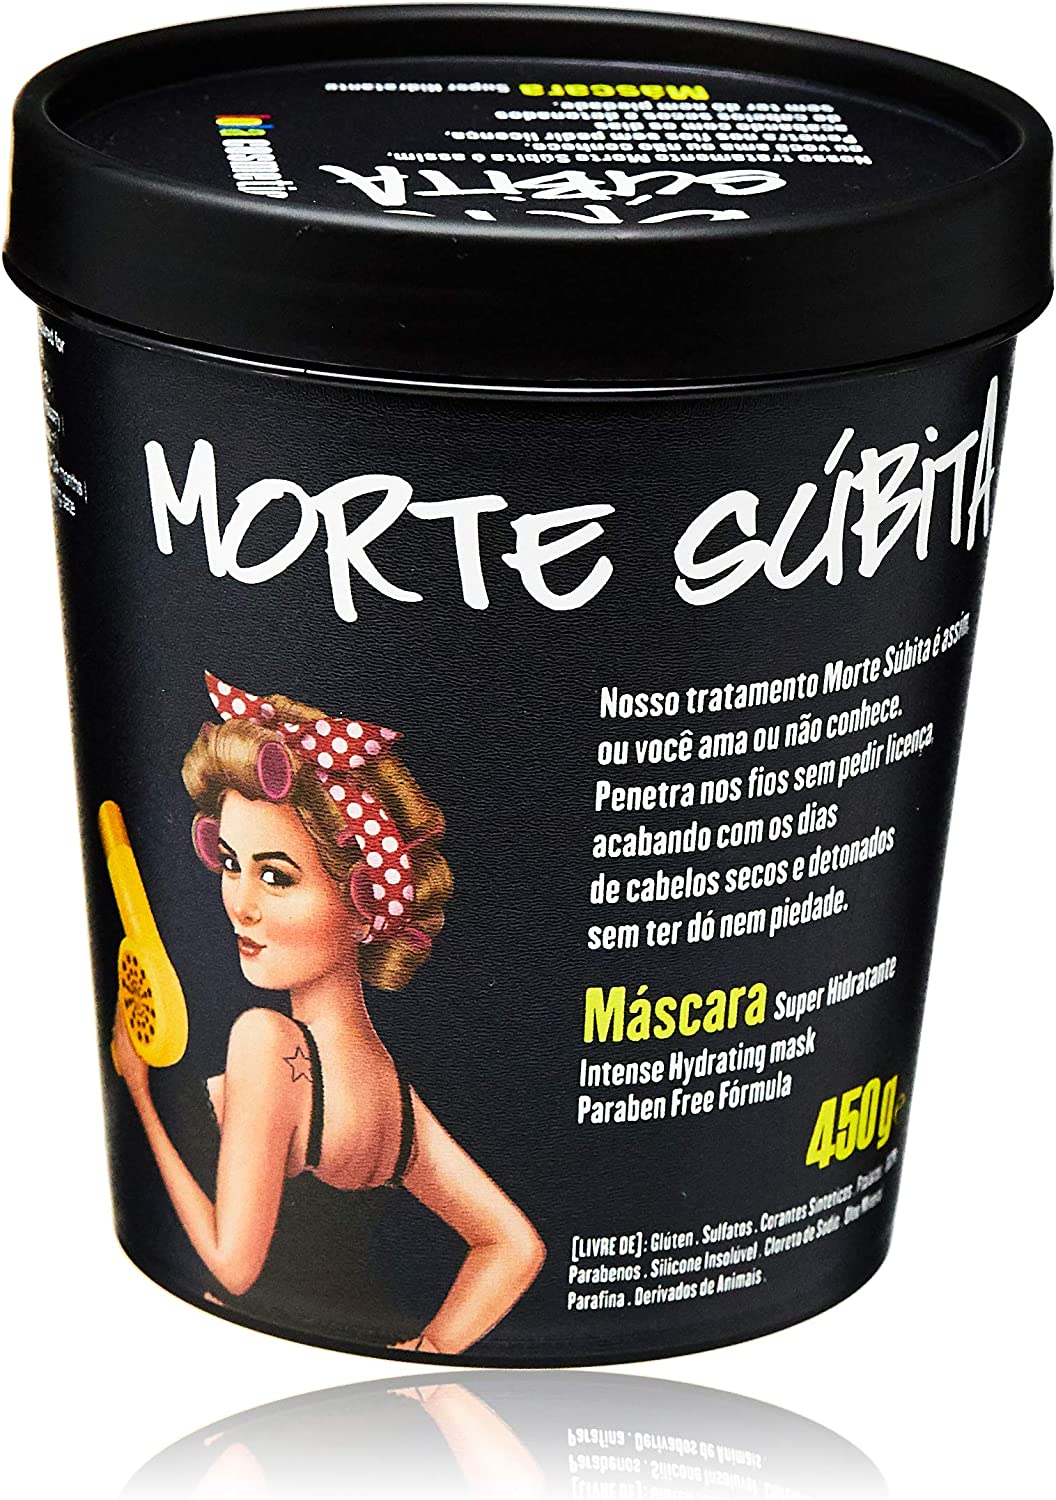 Máscara Super Hidratante Morte Súbita, Lola Cosmetics, 450g